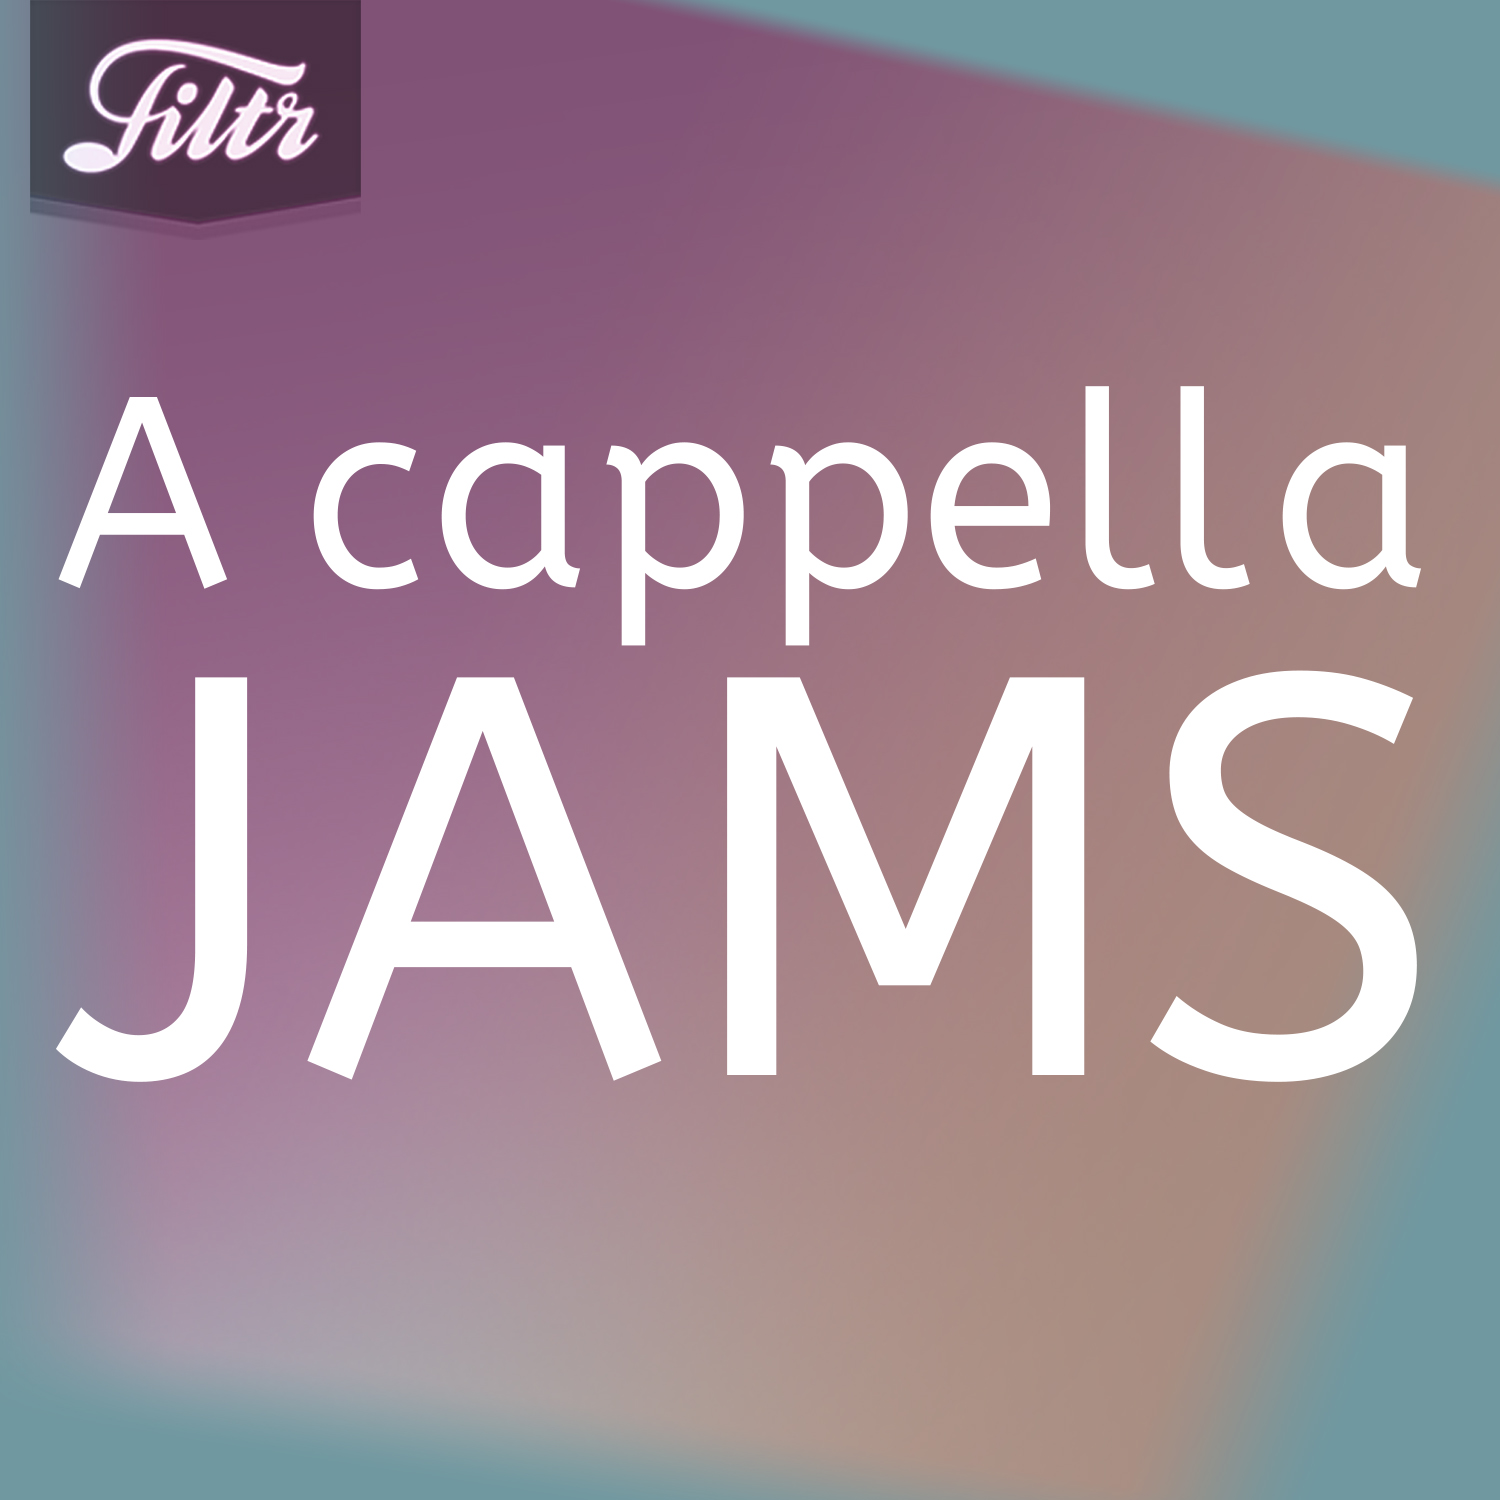 #MasterworksMonday: Hear New Peter Hollens and Much More in the A cappella Jams Filtr Playlist